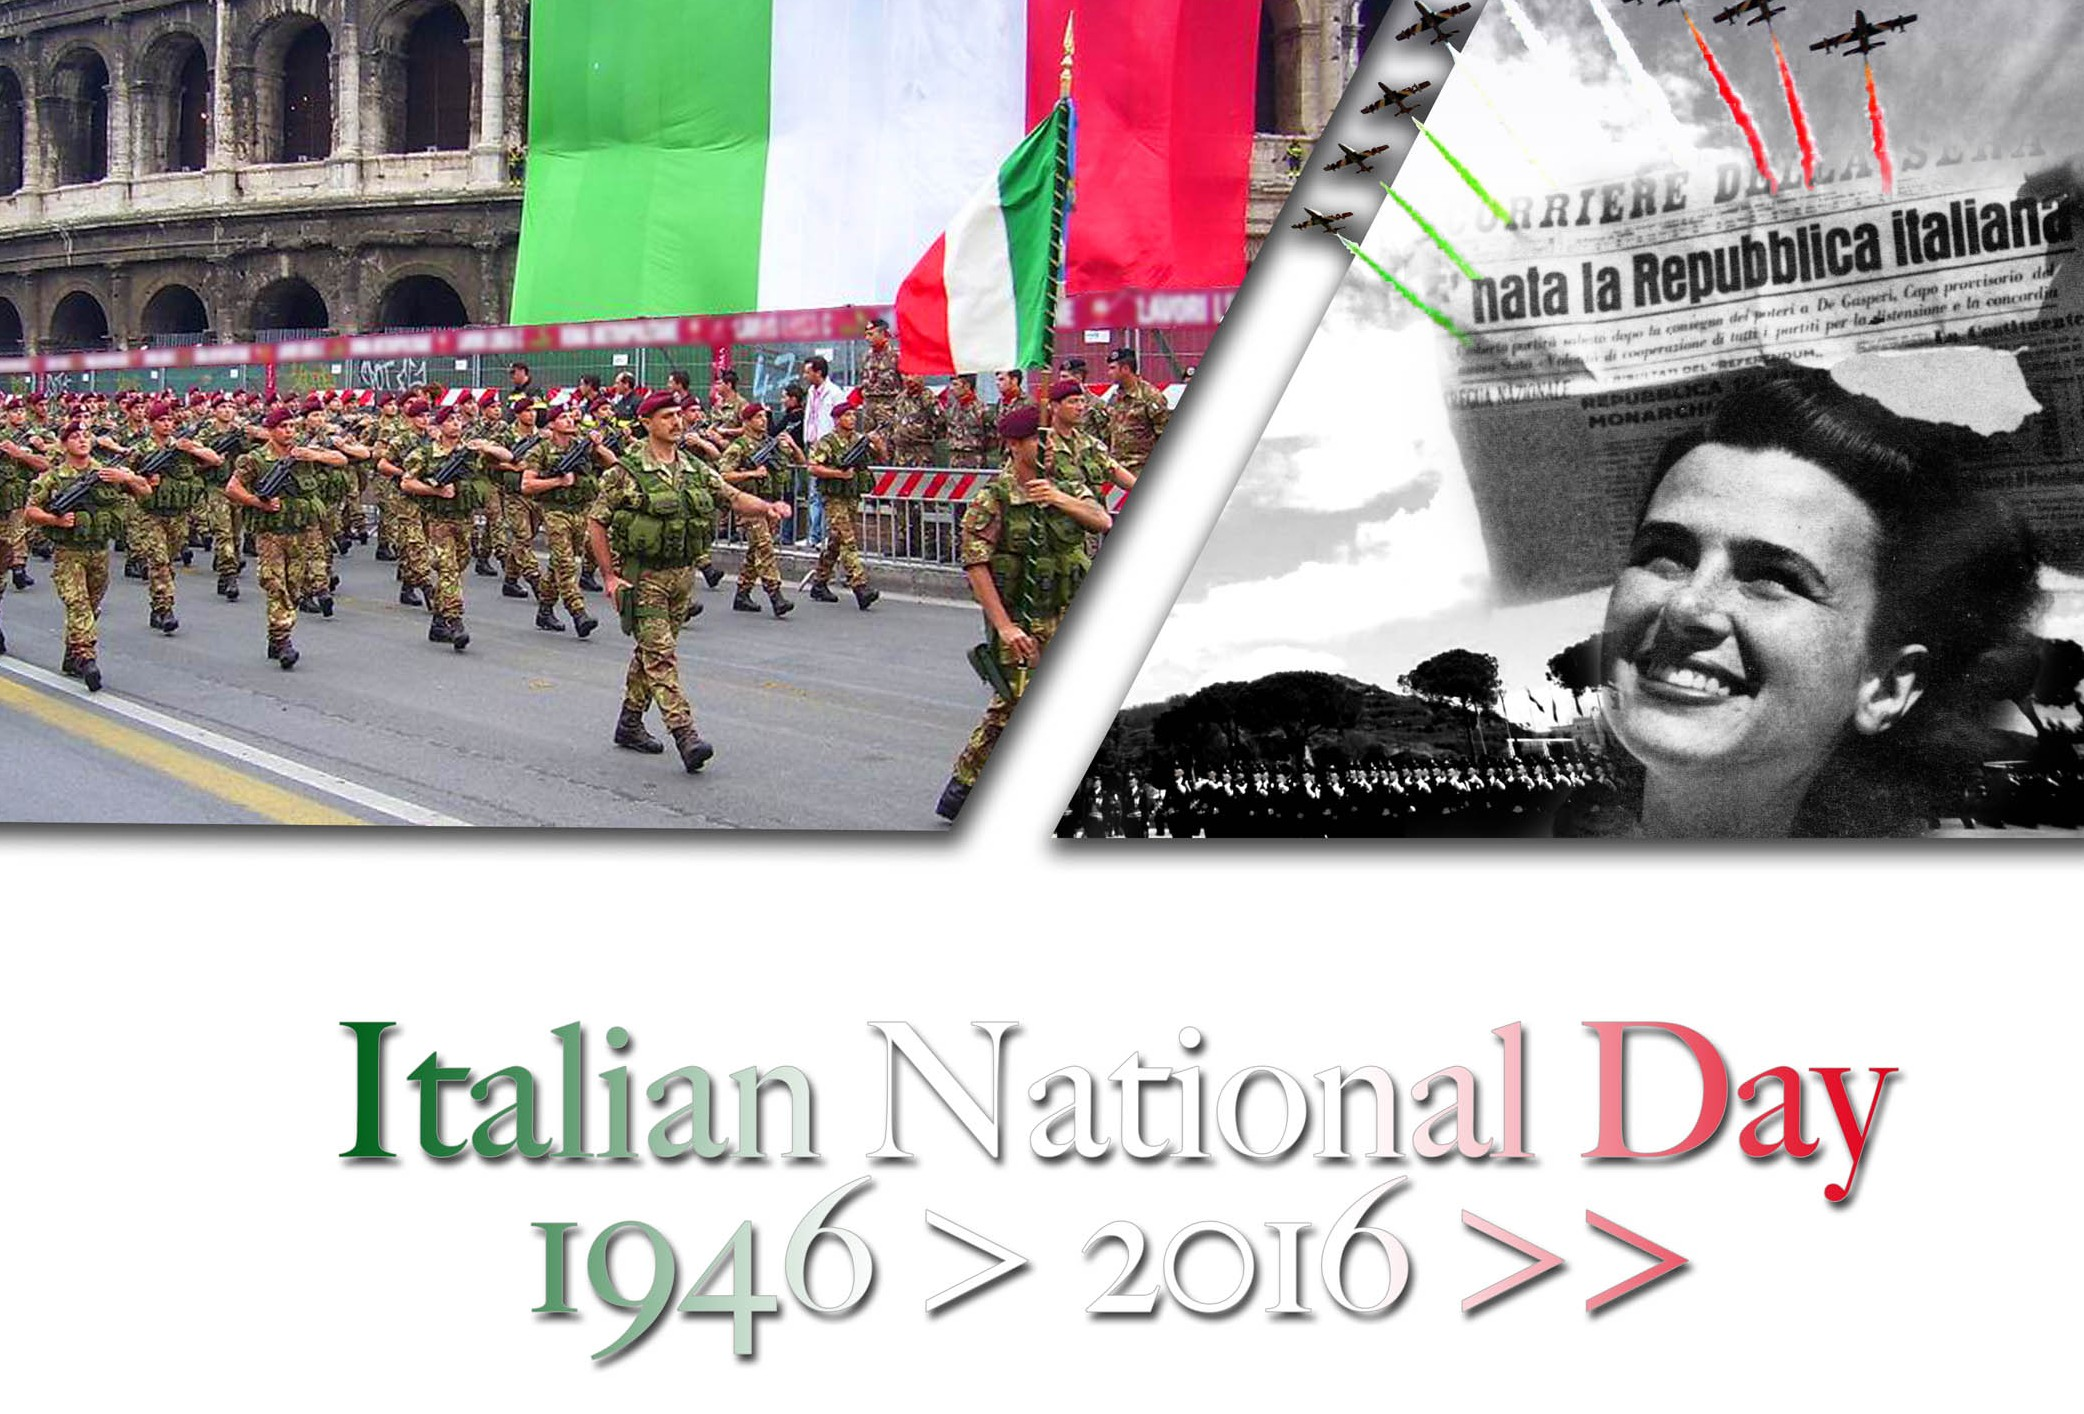 2nd June - Italian national day